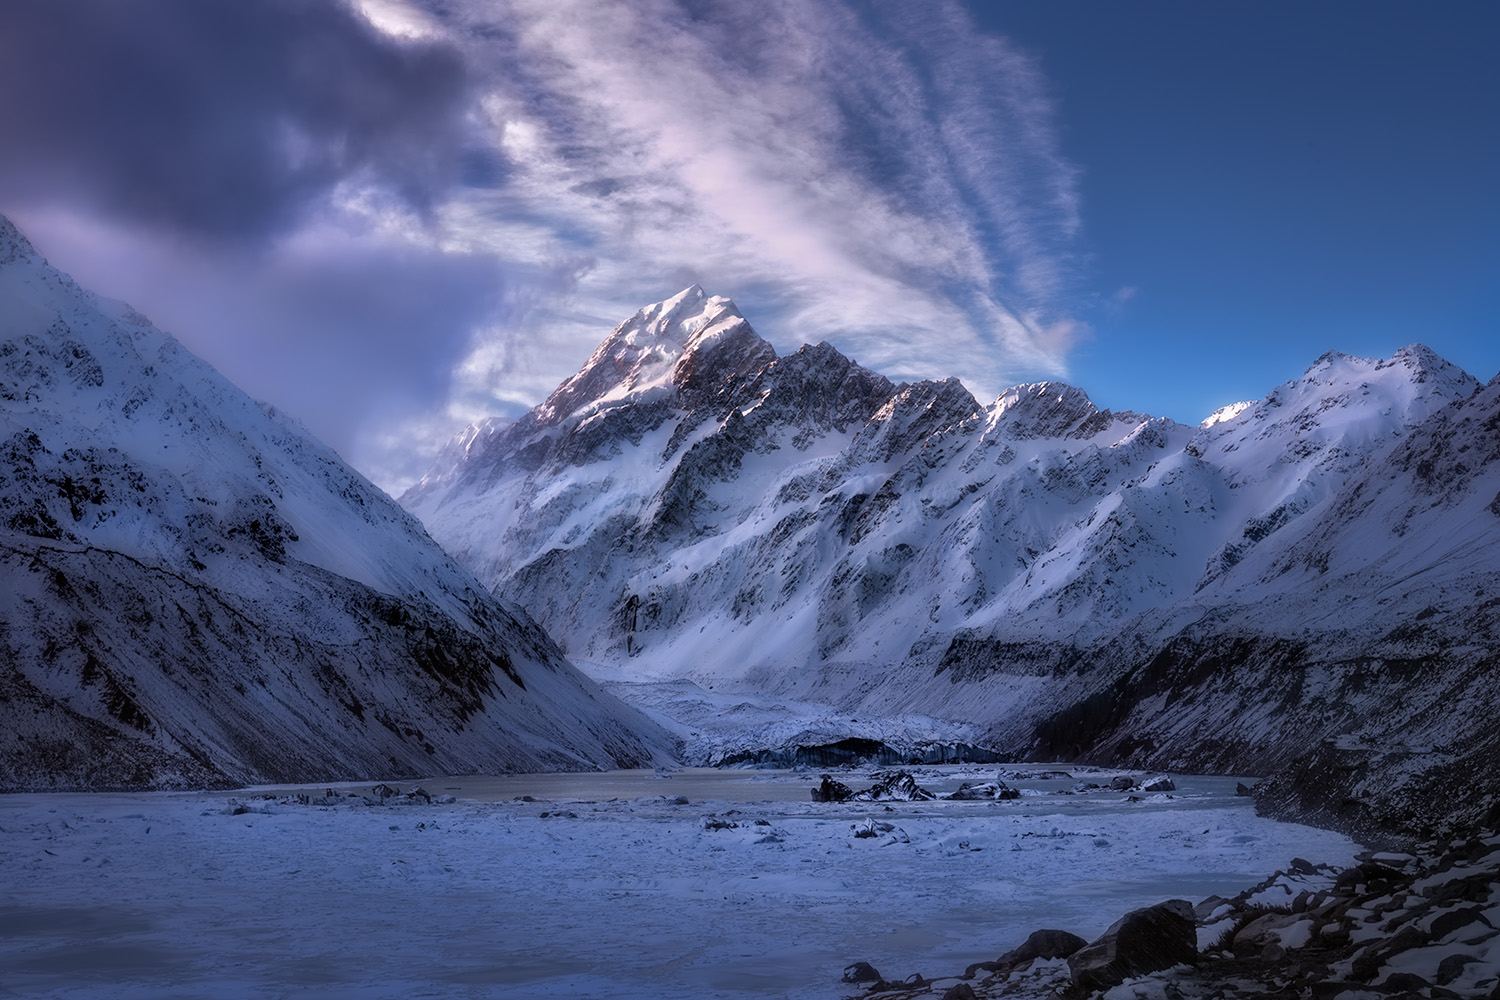 Landscape Photography Workshop Tour- Mt Cook, Hooker Valley Track, New Zealand by VivaKarolina